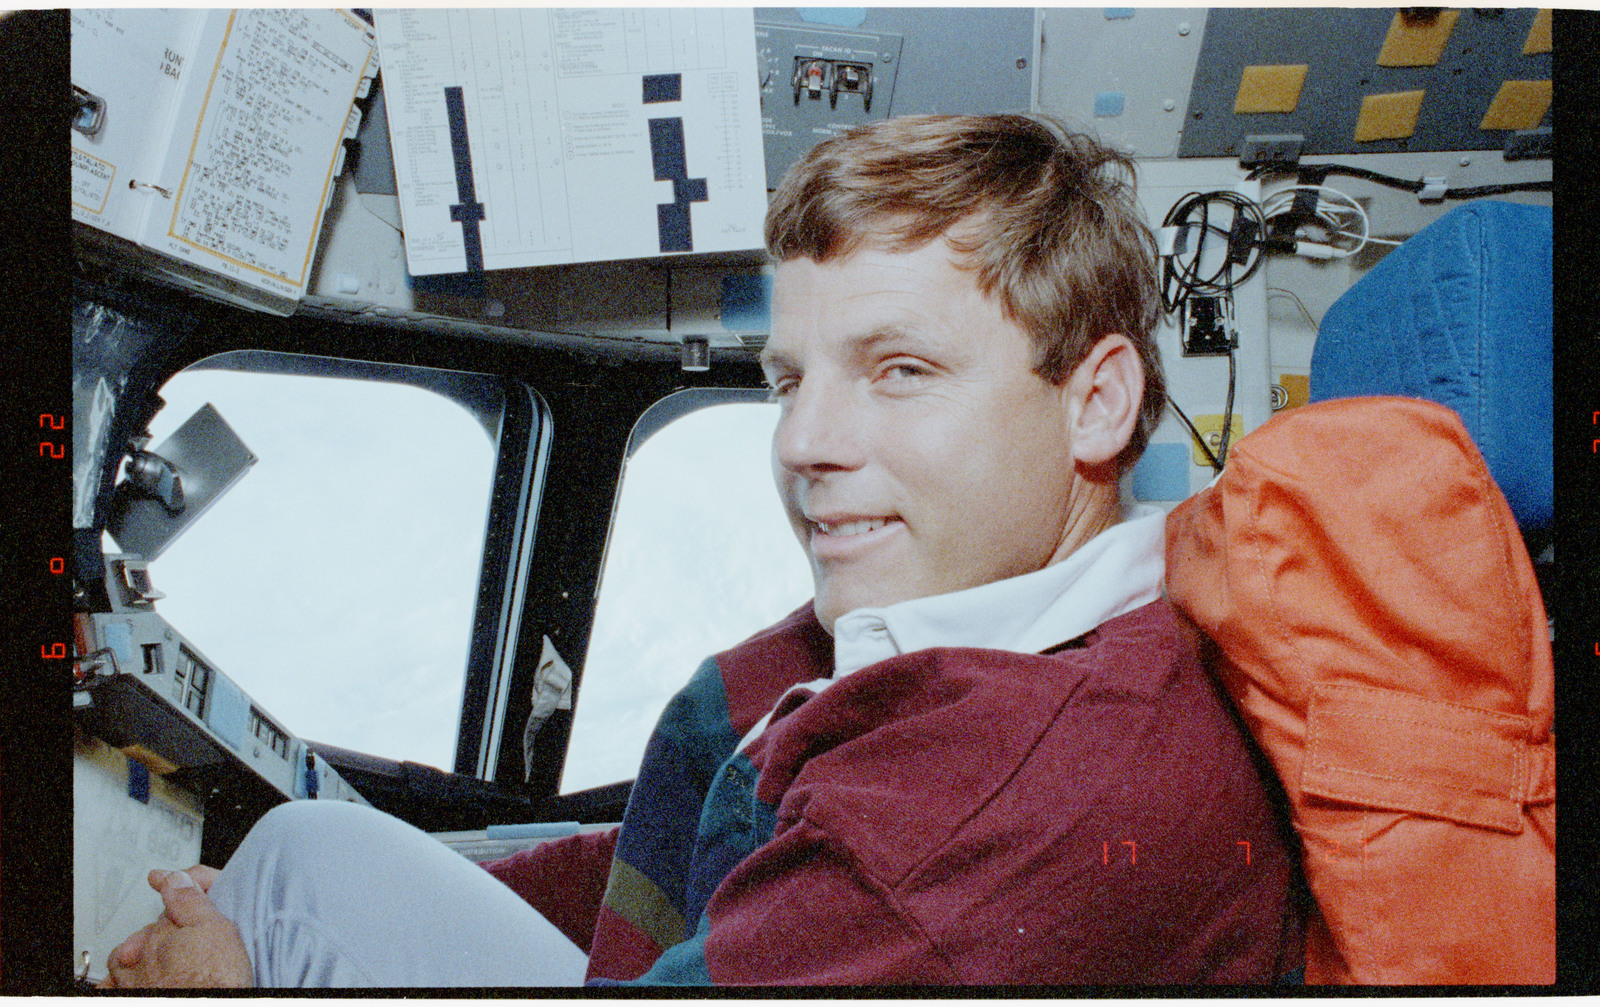 STS056-39-021 - STS-056 - Candid views of a crewmember in the fwd flight deck, Earth in background.